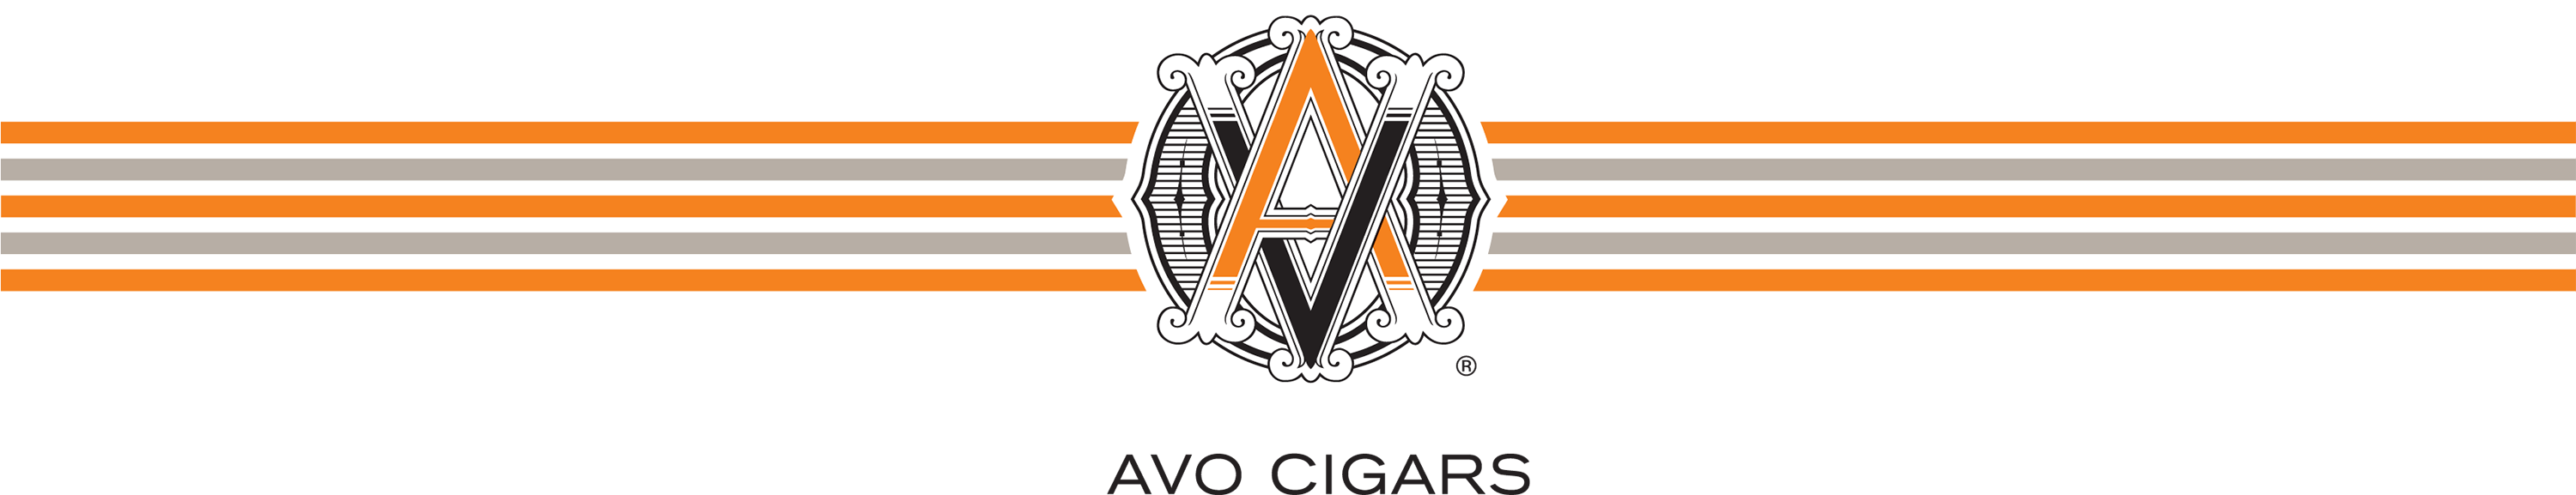 avo-logo-lines-small.png